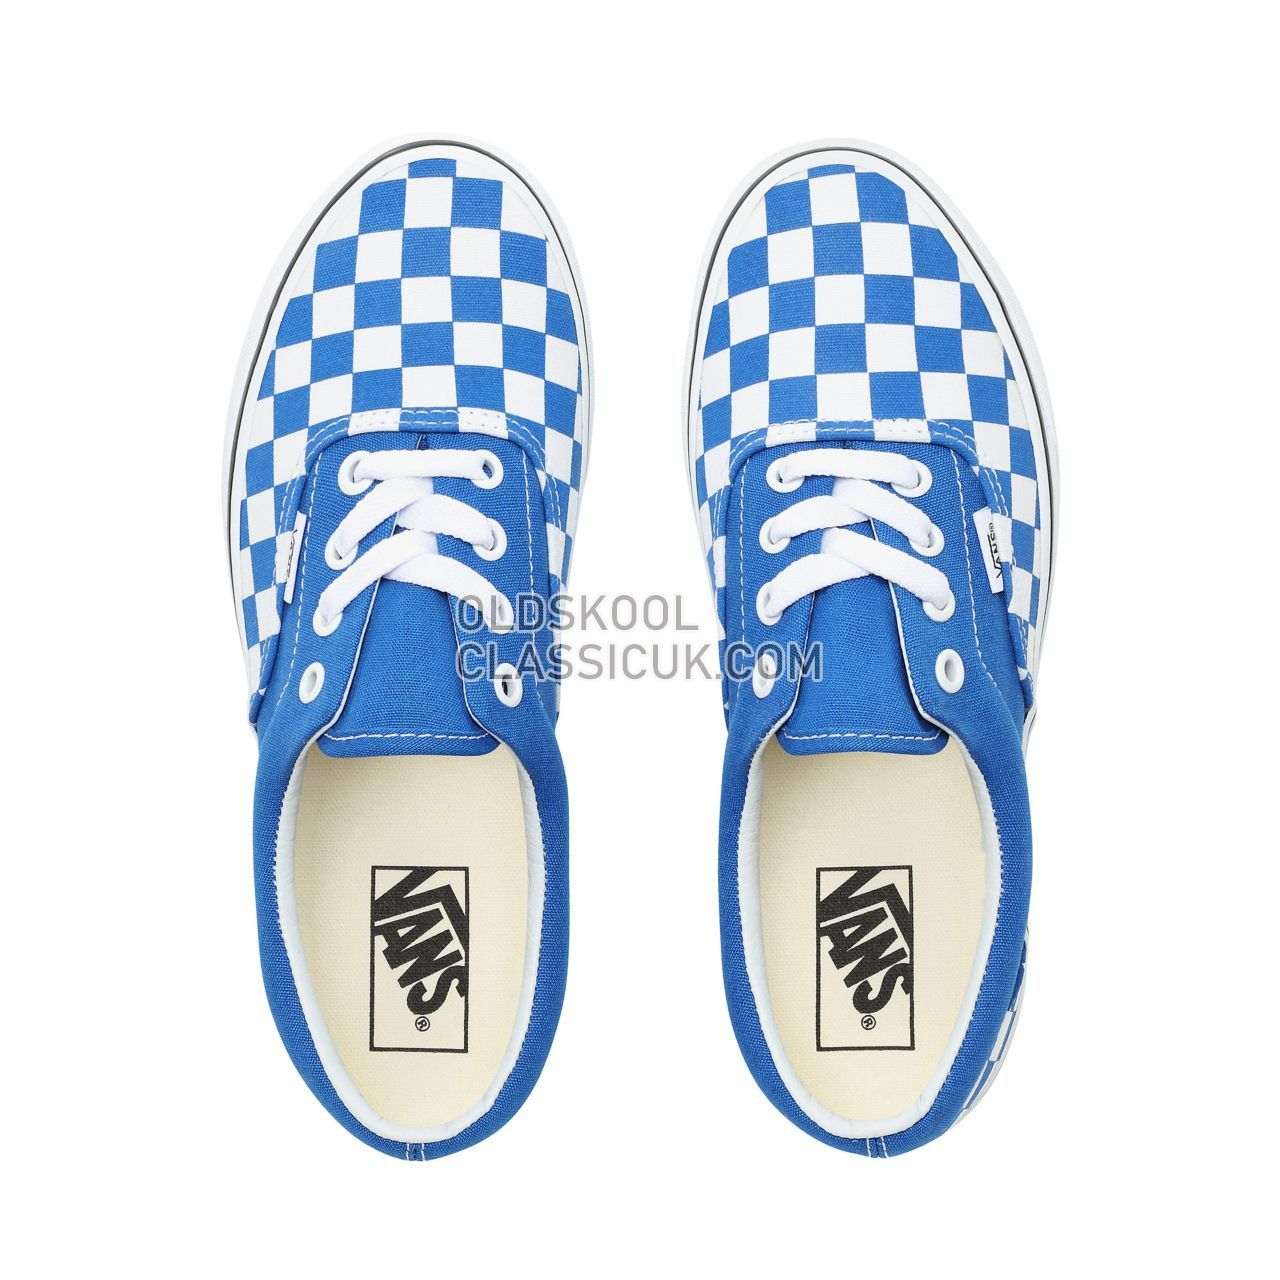 Vans Checkerboard Era Sneakers Womens (Checkerboard) Lapis Blue/True White VN0A38FRVOU Shoes